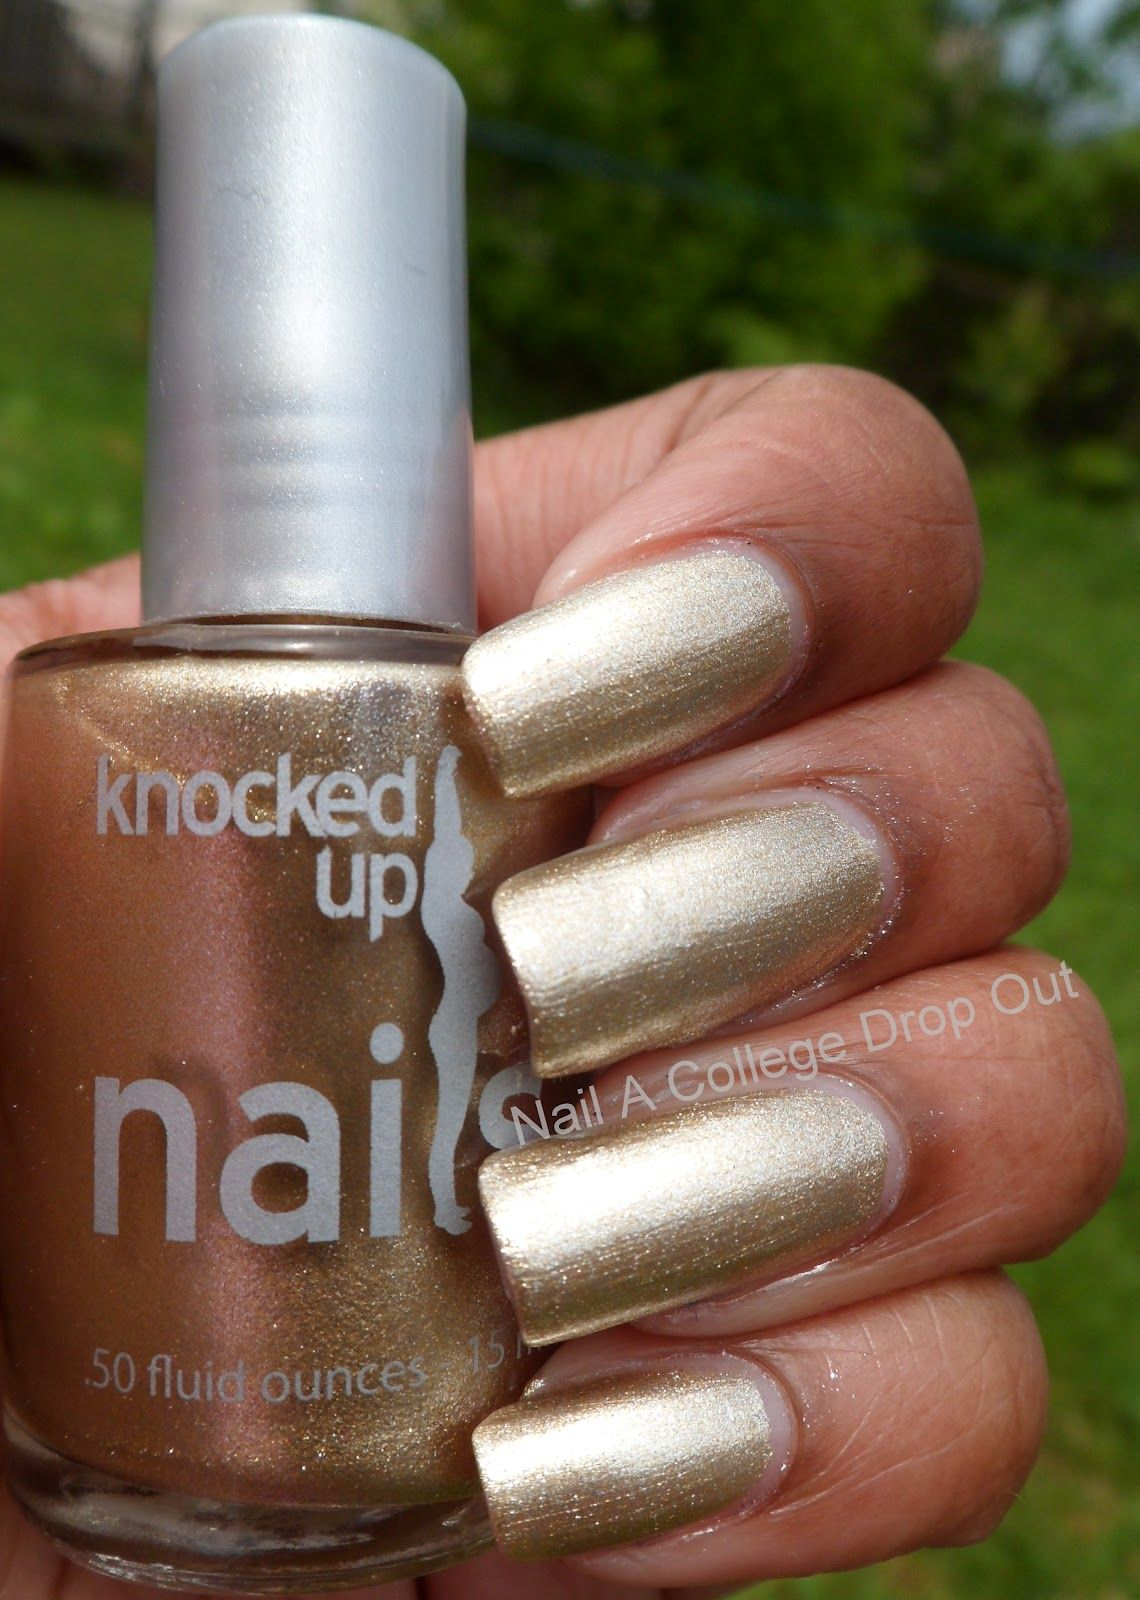 18K Gold Crown(ing) reviewed by Nail a College Dropout | Knocked Up ...